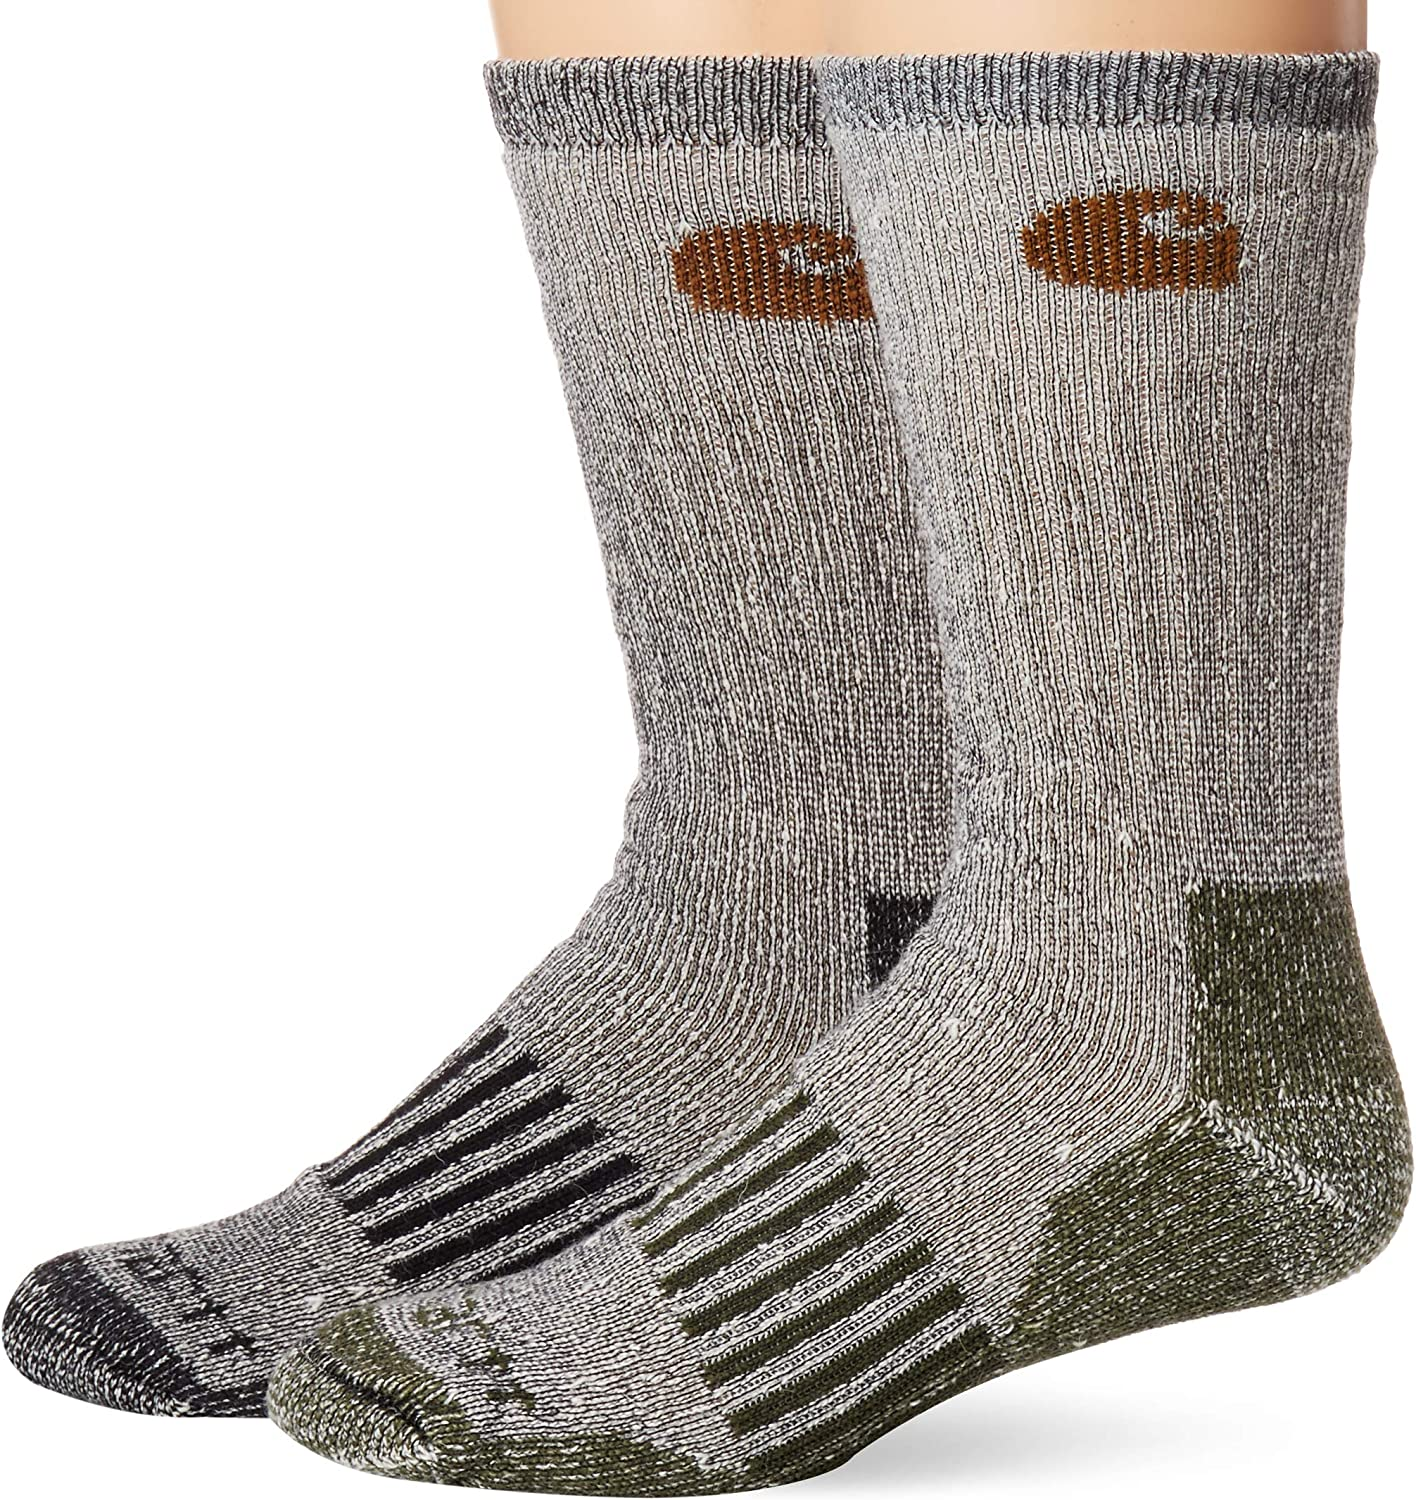 Carhartt Men's A118-4 Cold Weather Wool o Socks Blend Sales for sale Reservation Pack Crew